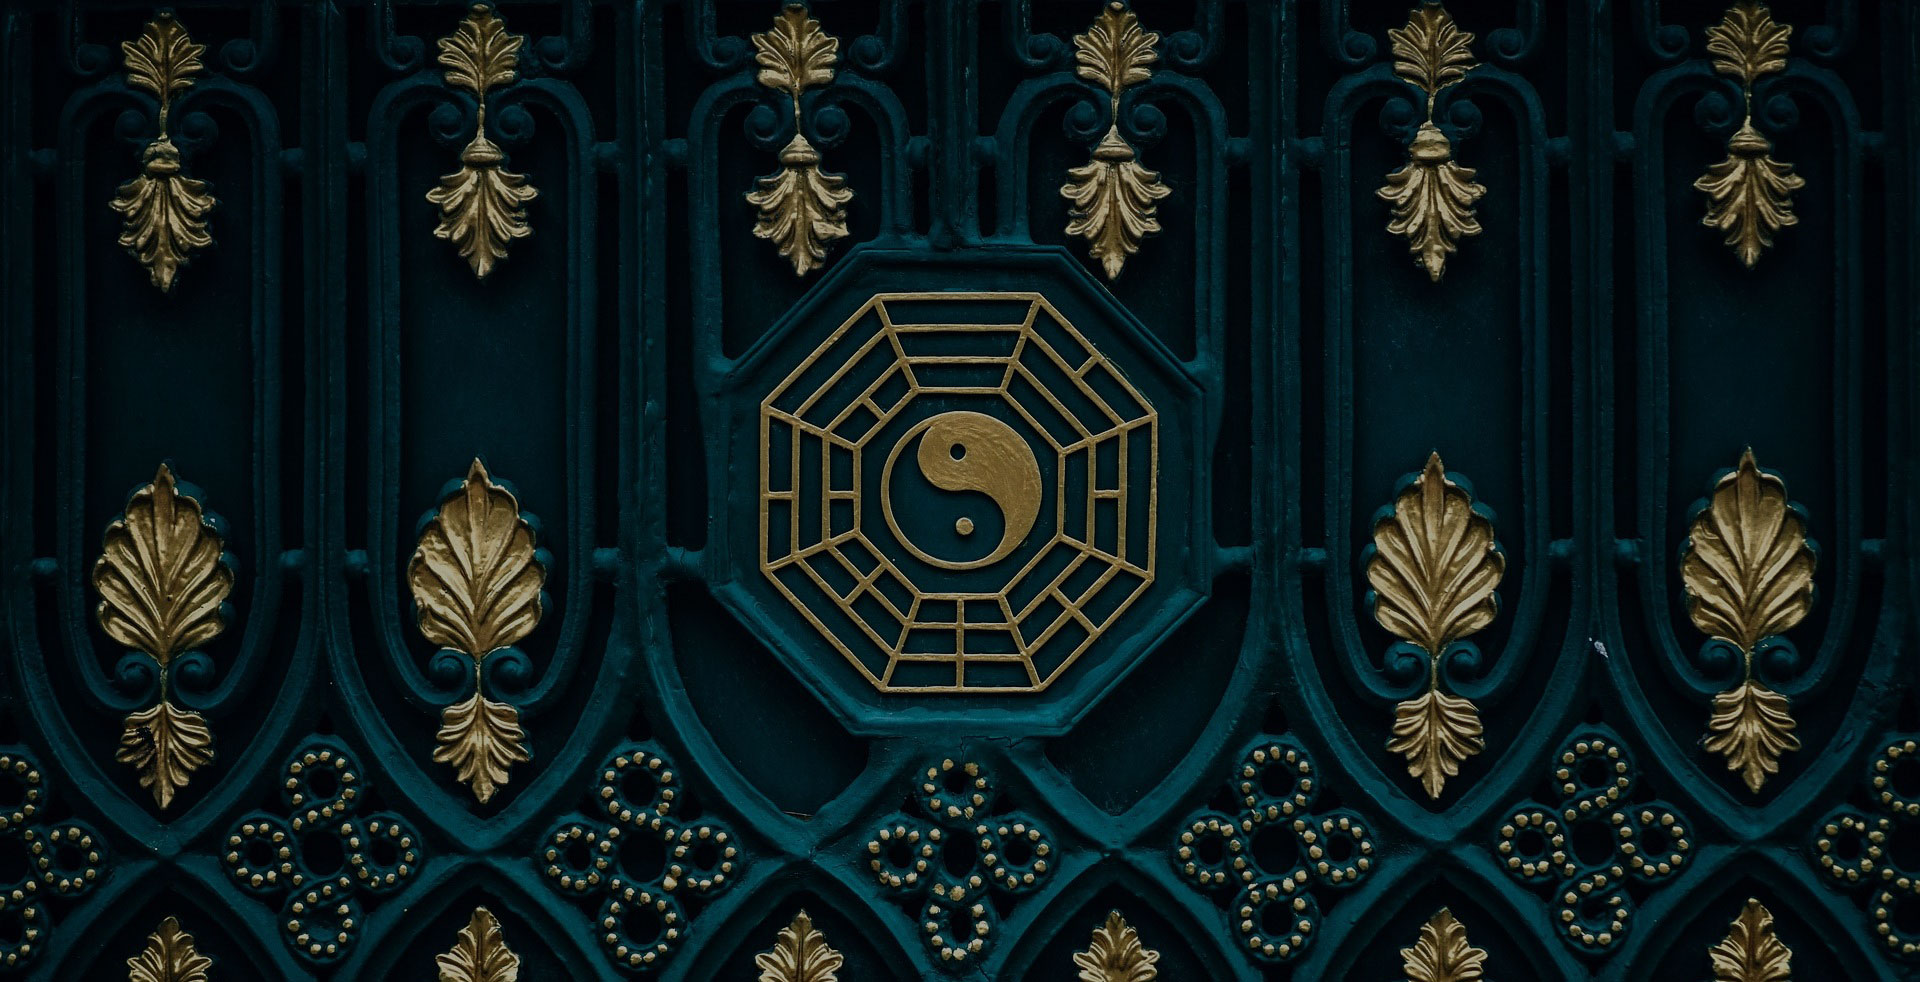 Yin Yang Taoist Temple door